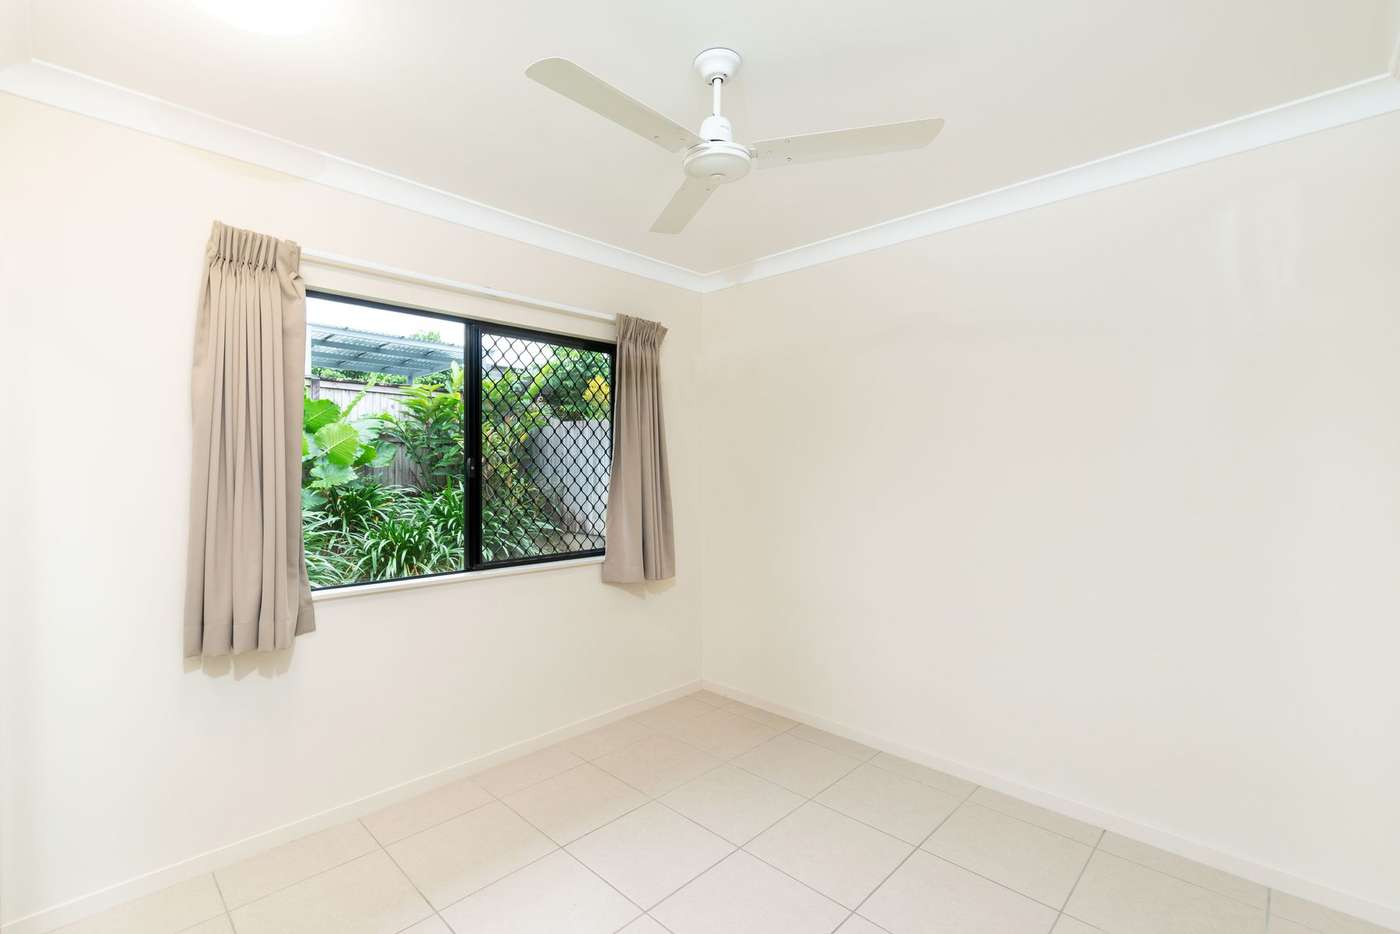 Sixth view of Homely house listing, 27 Ashwood Circuit, Smithfield QLD 4878